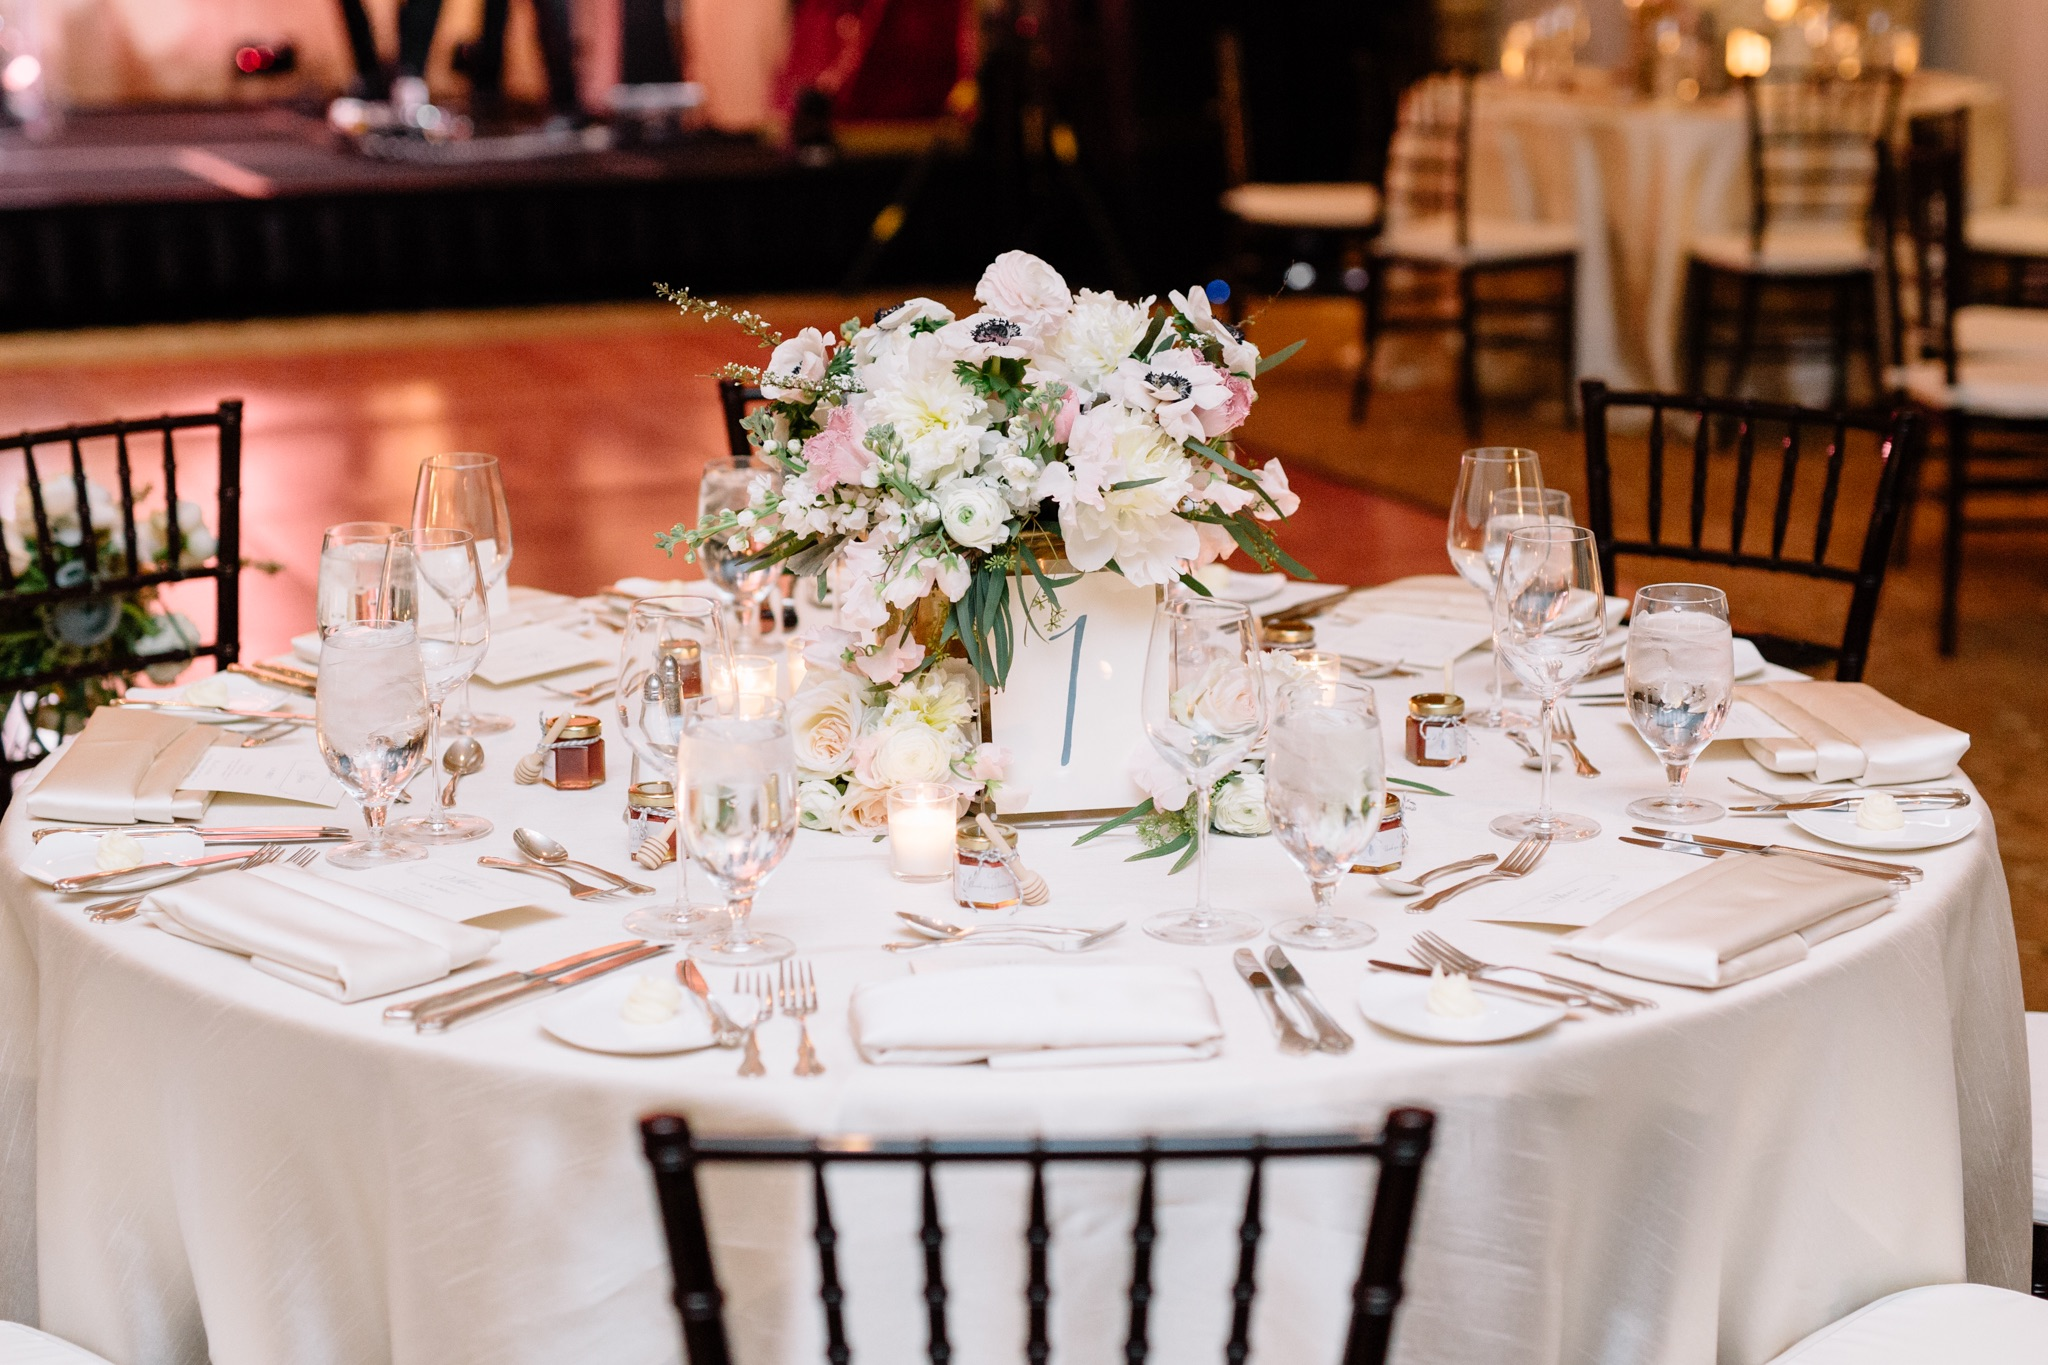 Floral centerpieces of hydrangea, blush and white roses